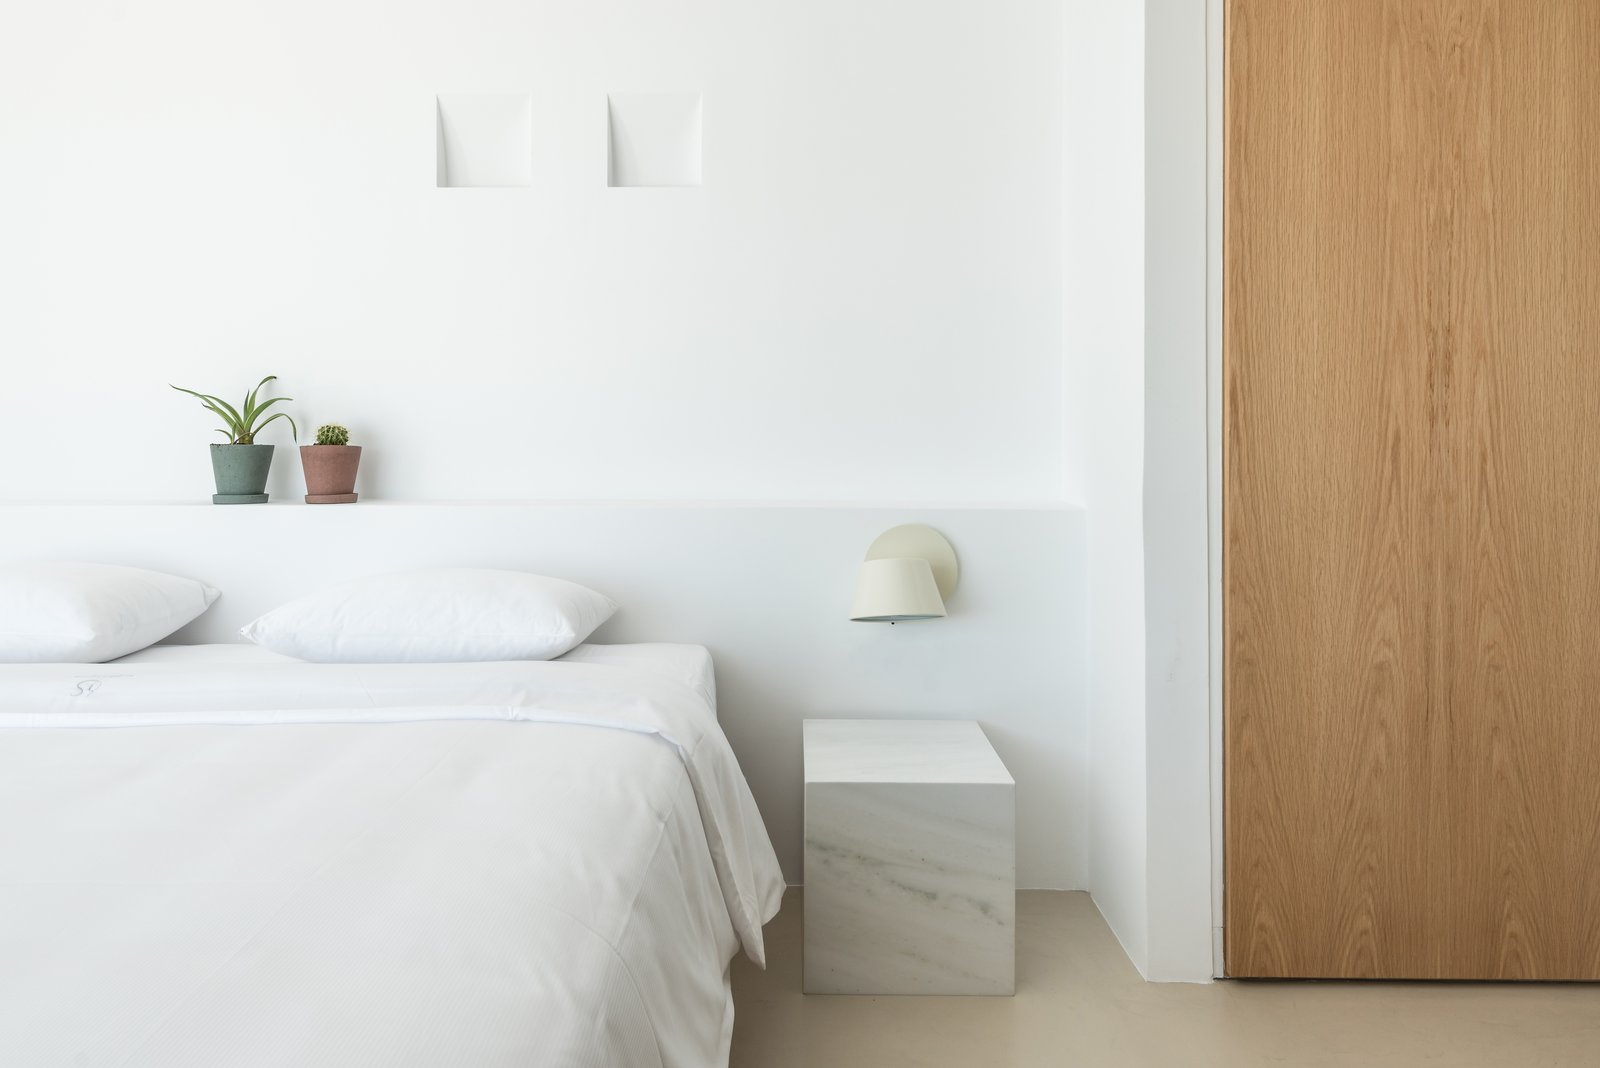 Bedroom, Wall, Night Stands, Bed, Accent, and Concrete Warm timber and plants add a touch of softness to the stone and concrete foundation.  Best Bedroom Bed Concrete Wall Night Stands Photos from A Modern Home Is Gently Slotted Into a Steep Slope in Santorini